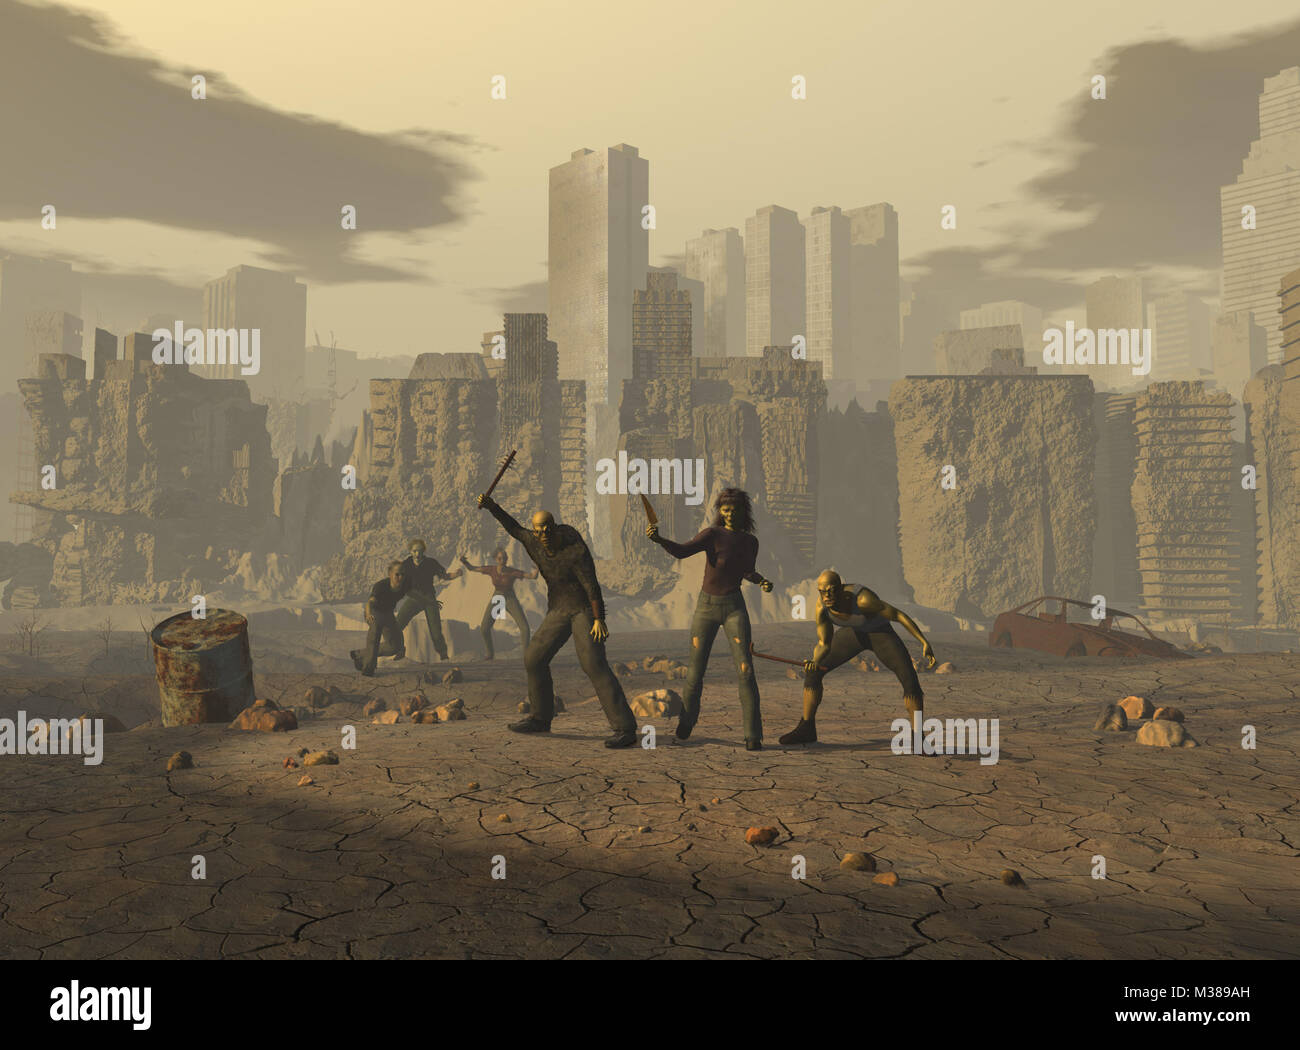 Mutants in a post apocalyptic landscape - Stock Image